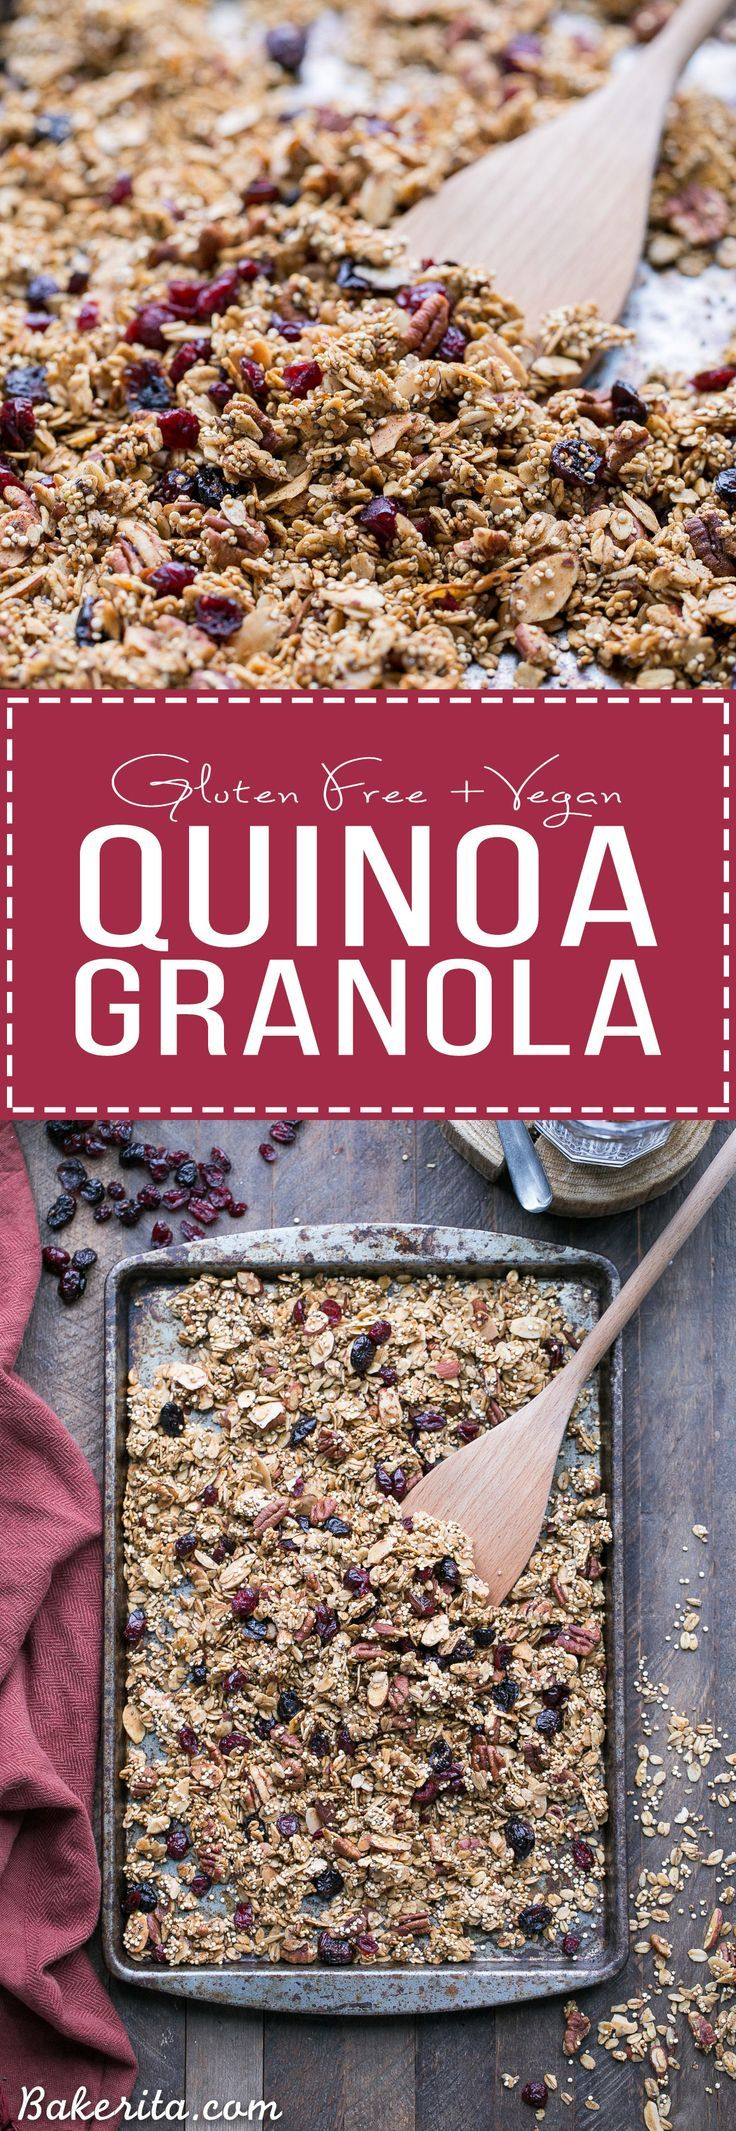 This Quinoa Granola is a nutty, crunchy breakfast or snack option that's packed with whole grains and protein. This maple-sweetened granola is gluten-free and vegan, with cinnamon and dried cranberries for flavor! The quinoa bakes up into delicious cluste